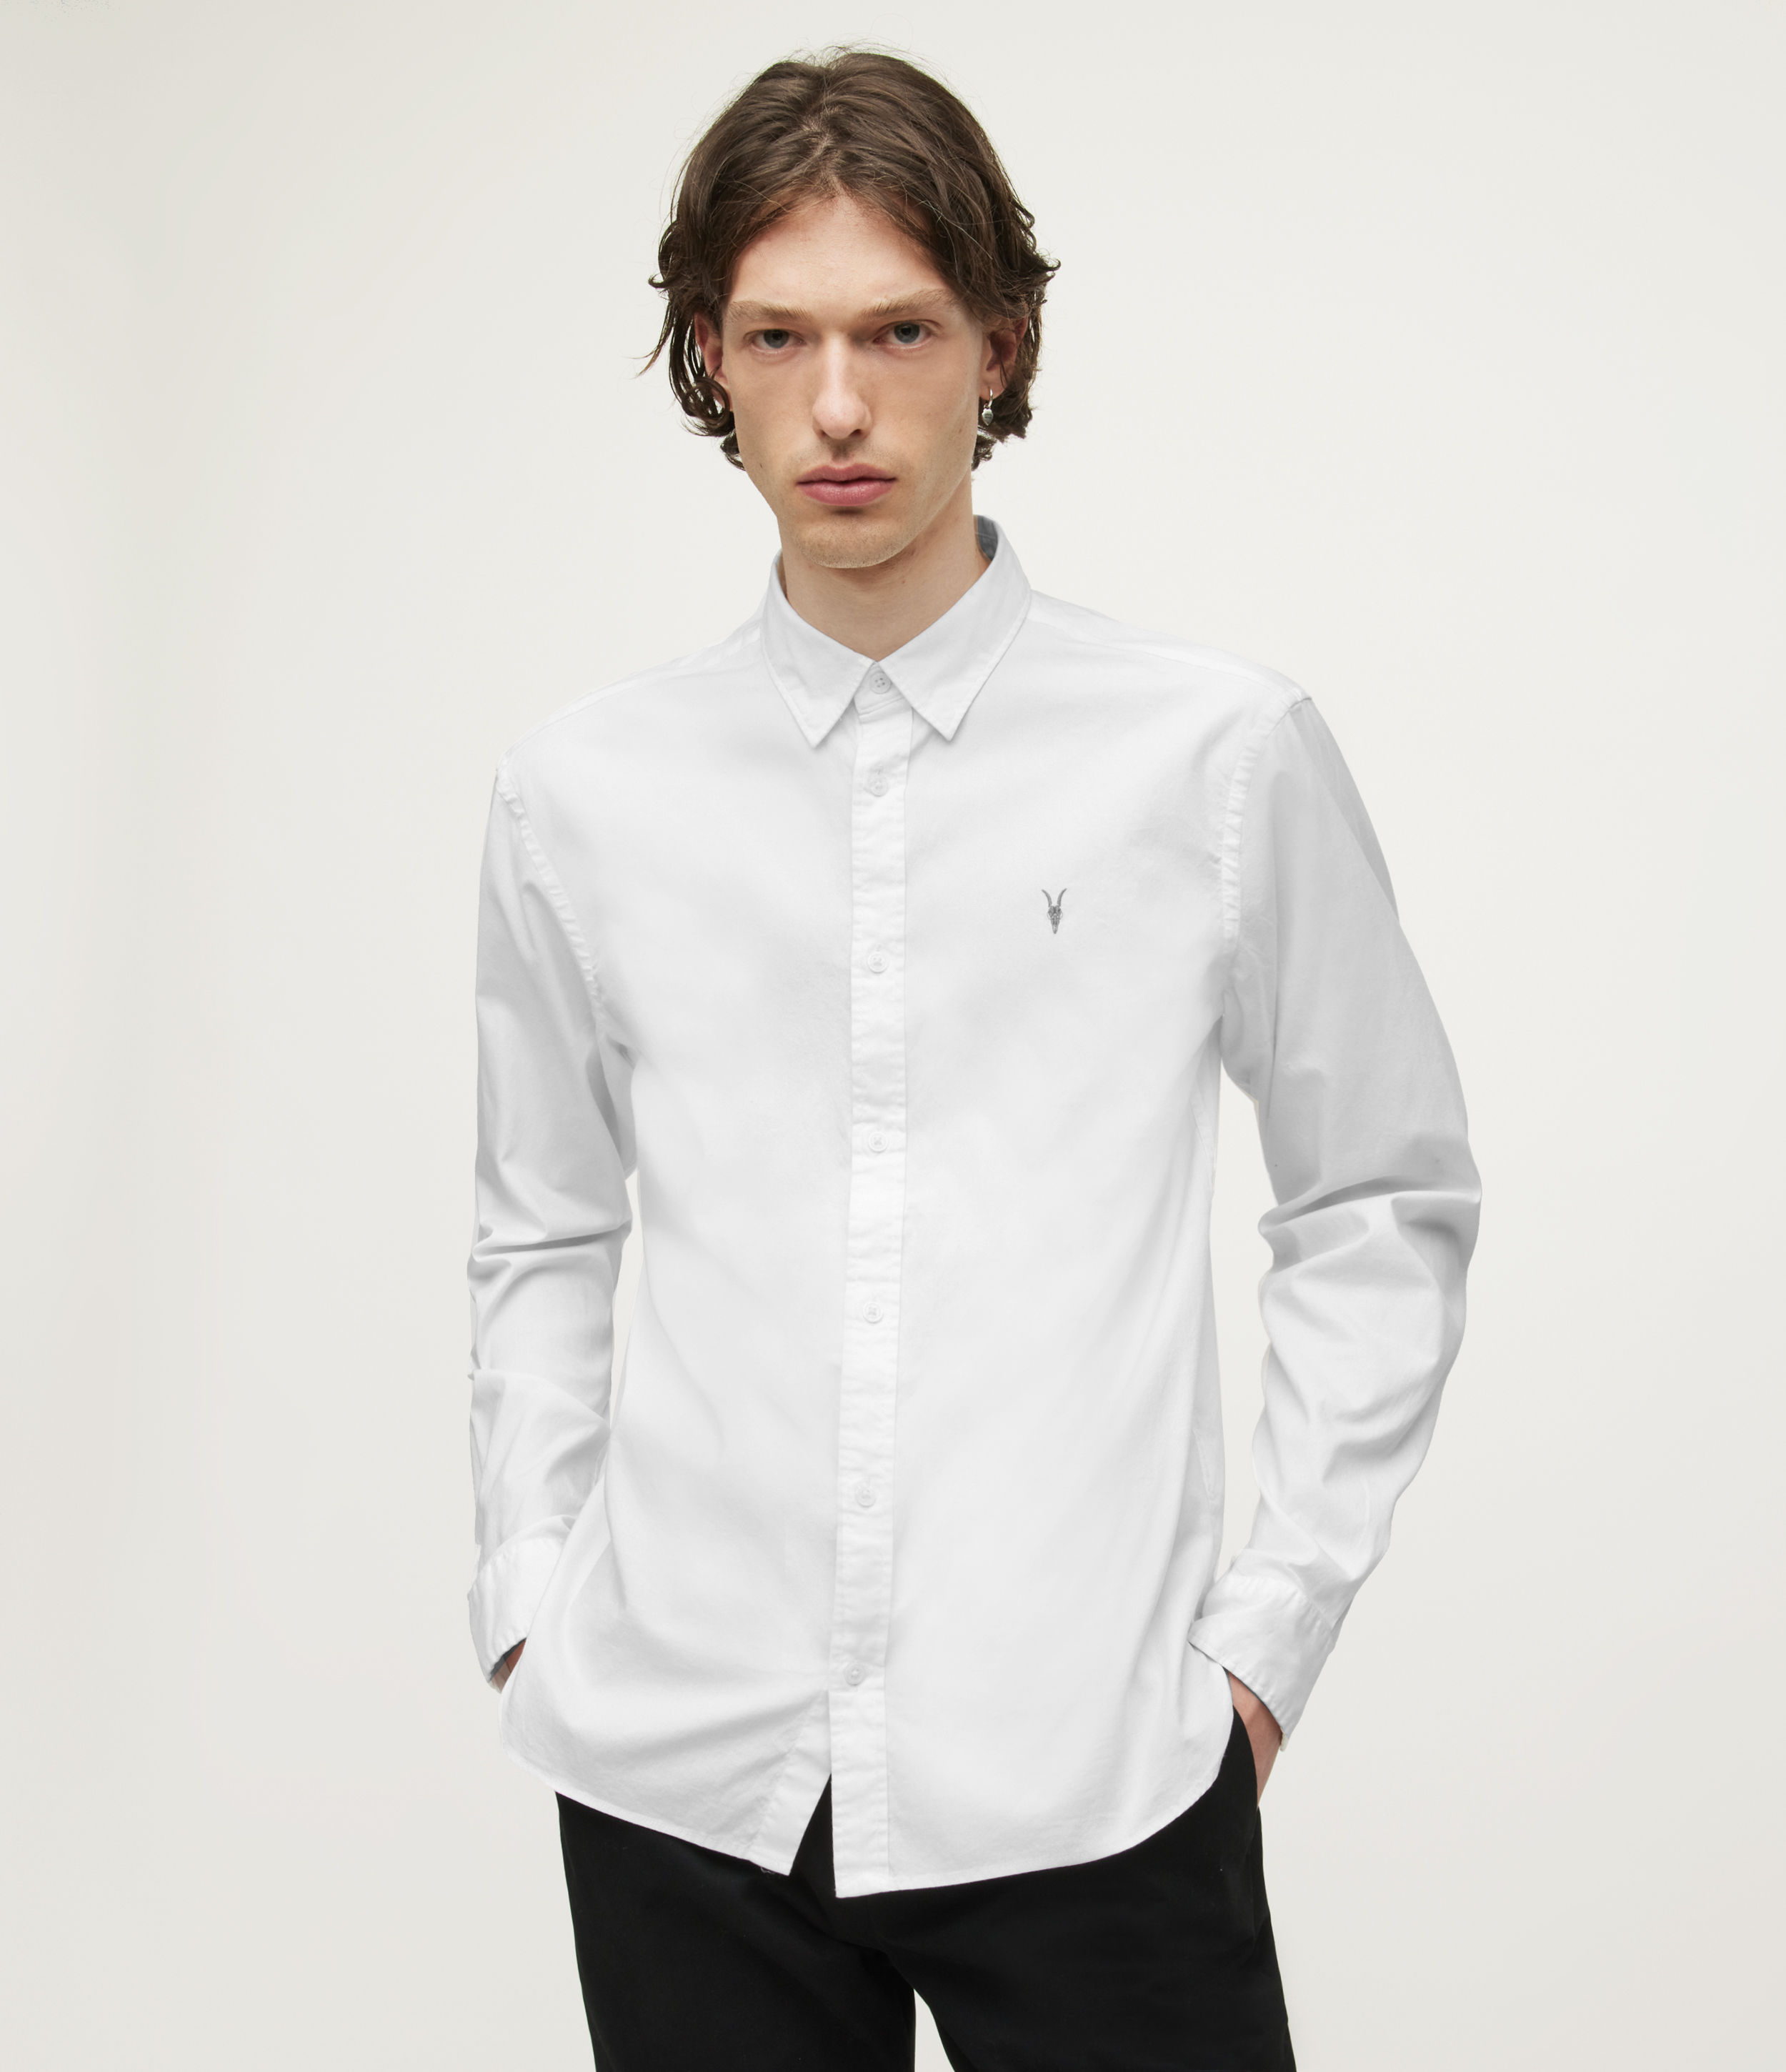 AllSaints Mens Hawthorne Stretch Fit Shirt, White, Size: S